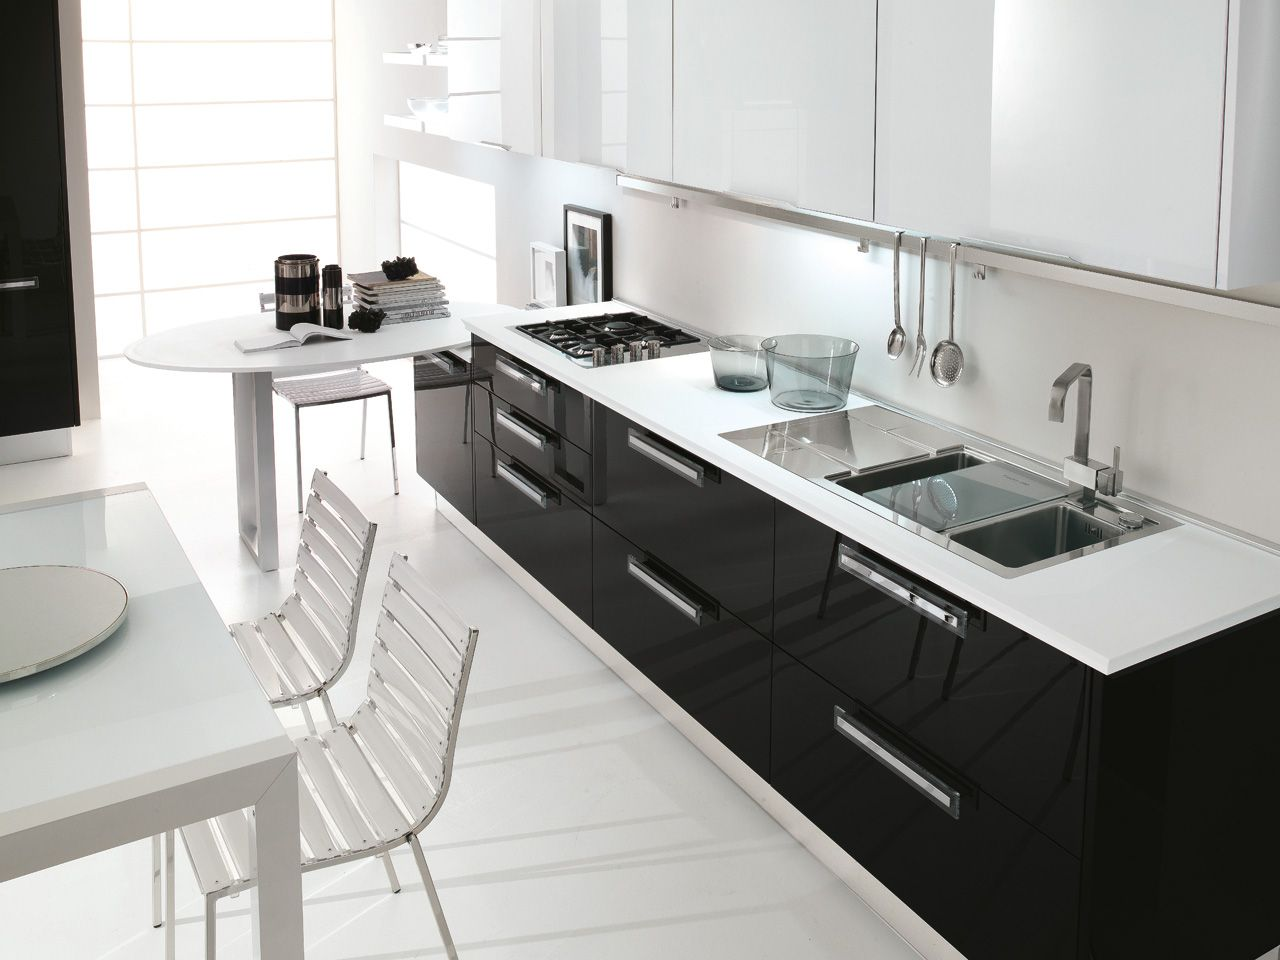 Nilde - Kitchens - Cucine Lube | Ideias novo apê | Kitchen ...